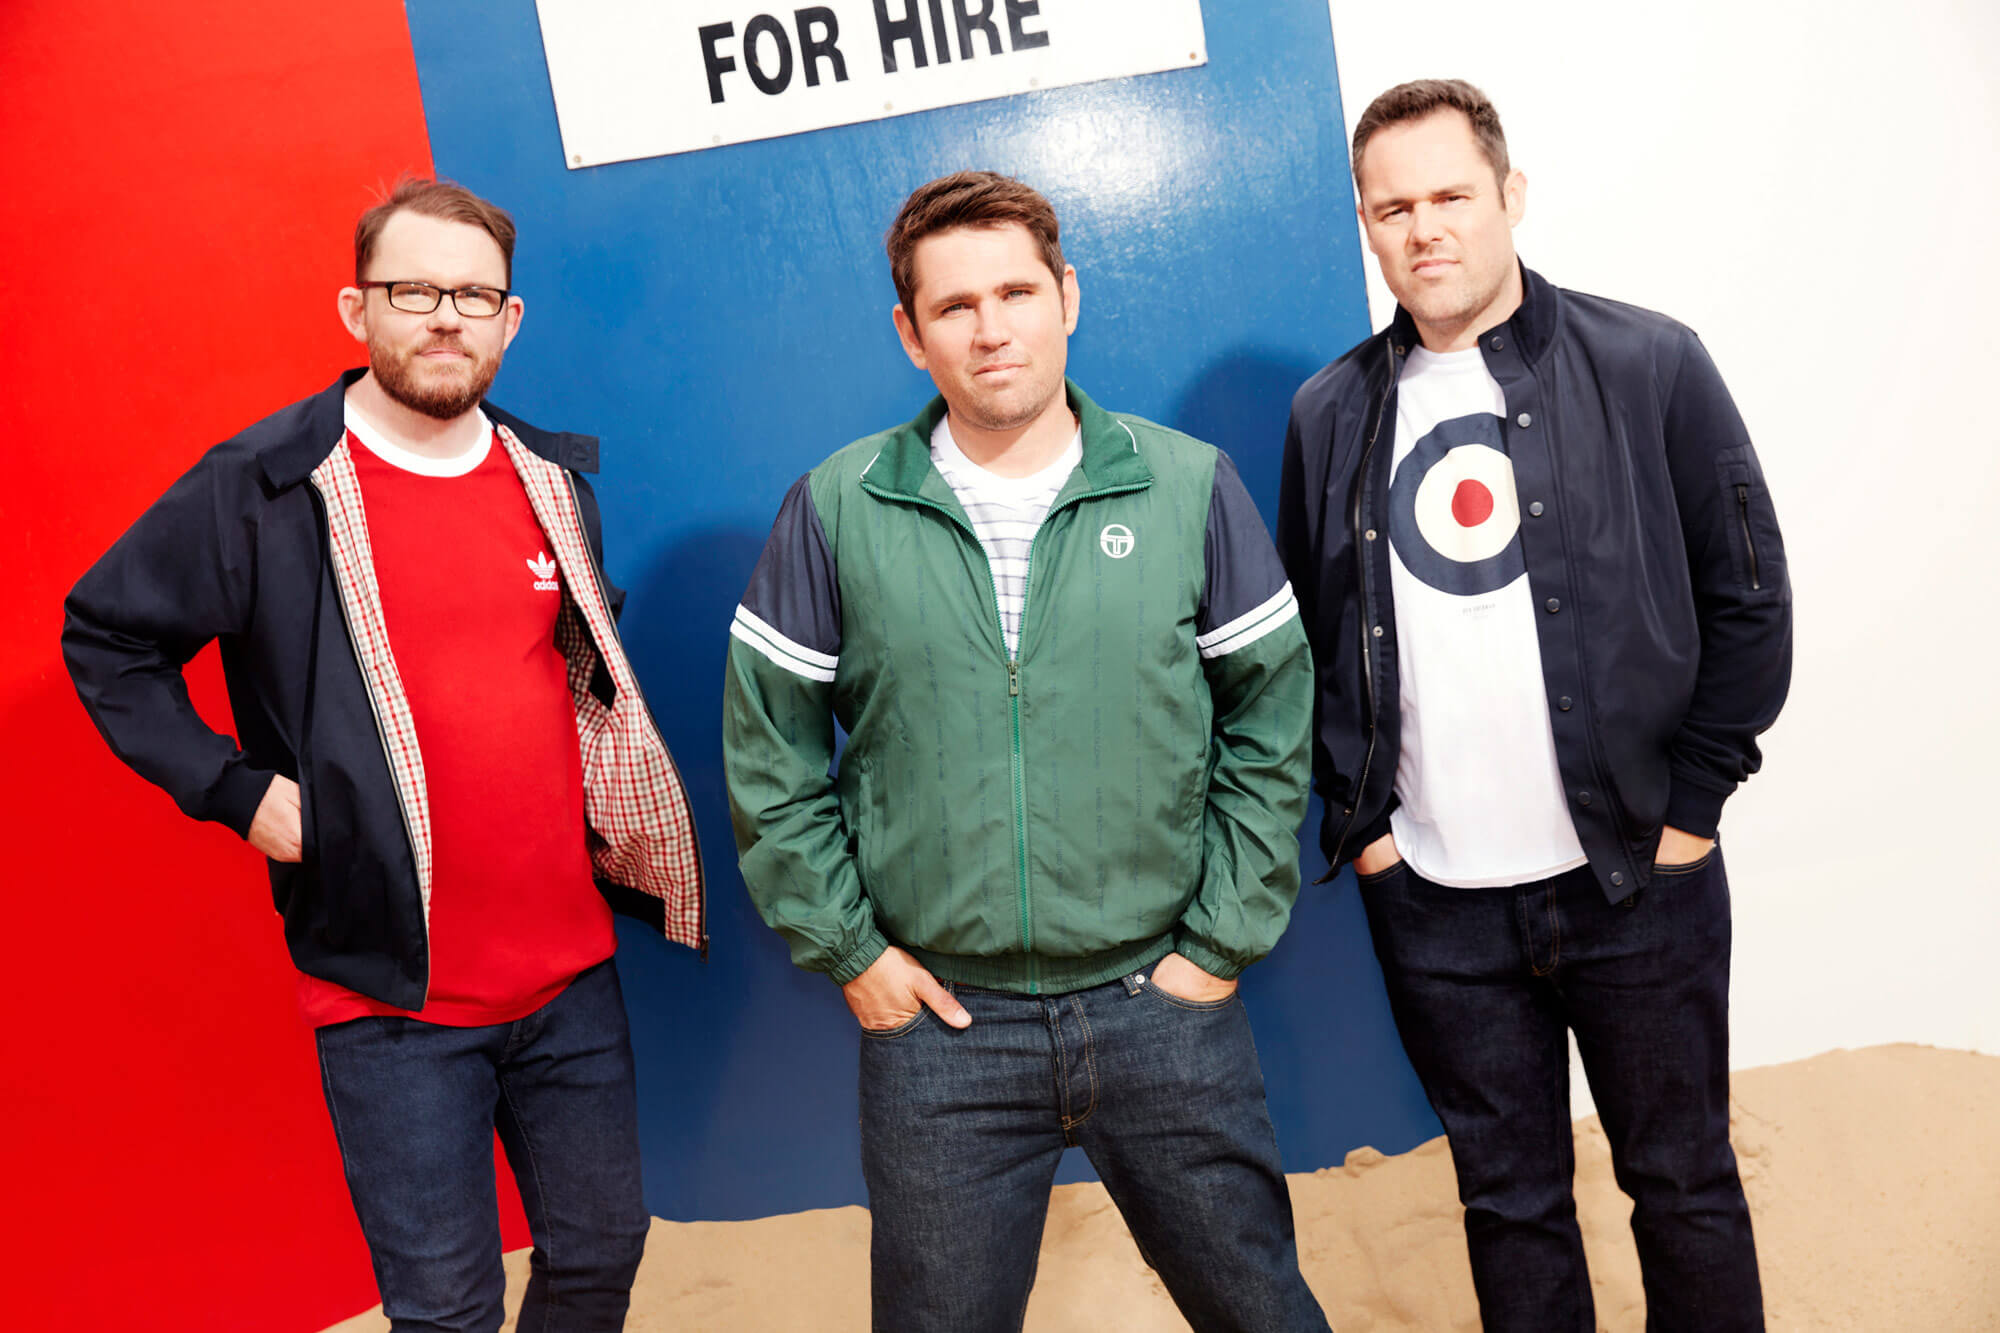 Scouting For Girls band members posing for a promotional image for The Classic at Silverstone